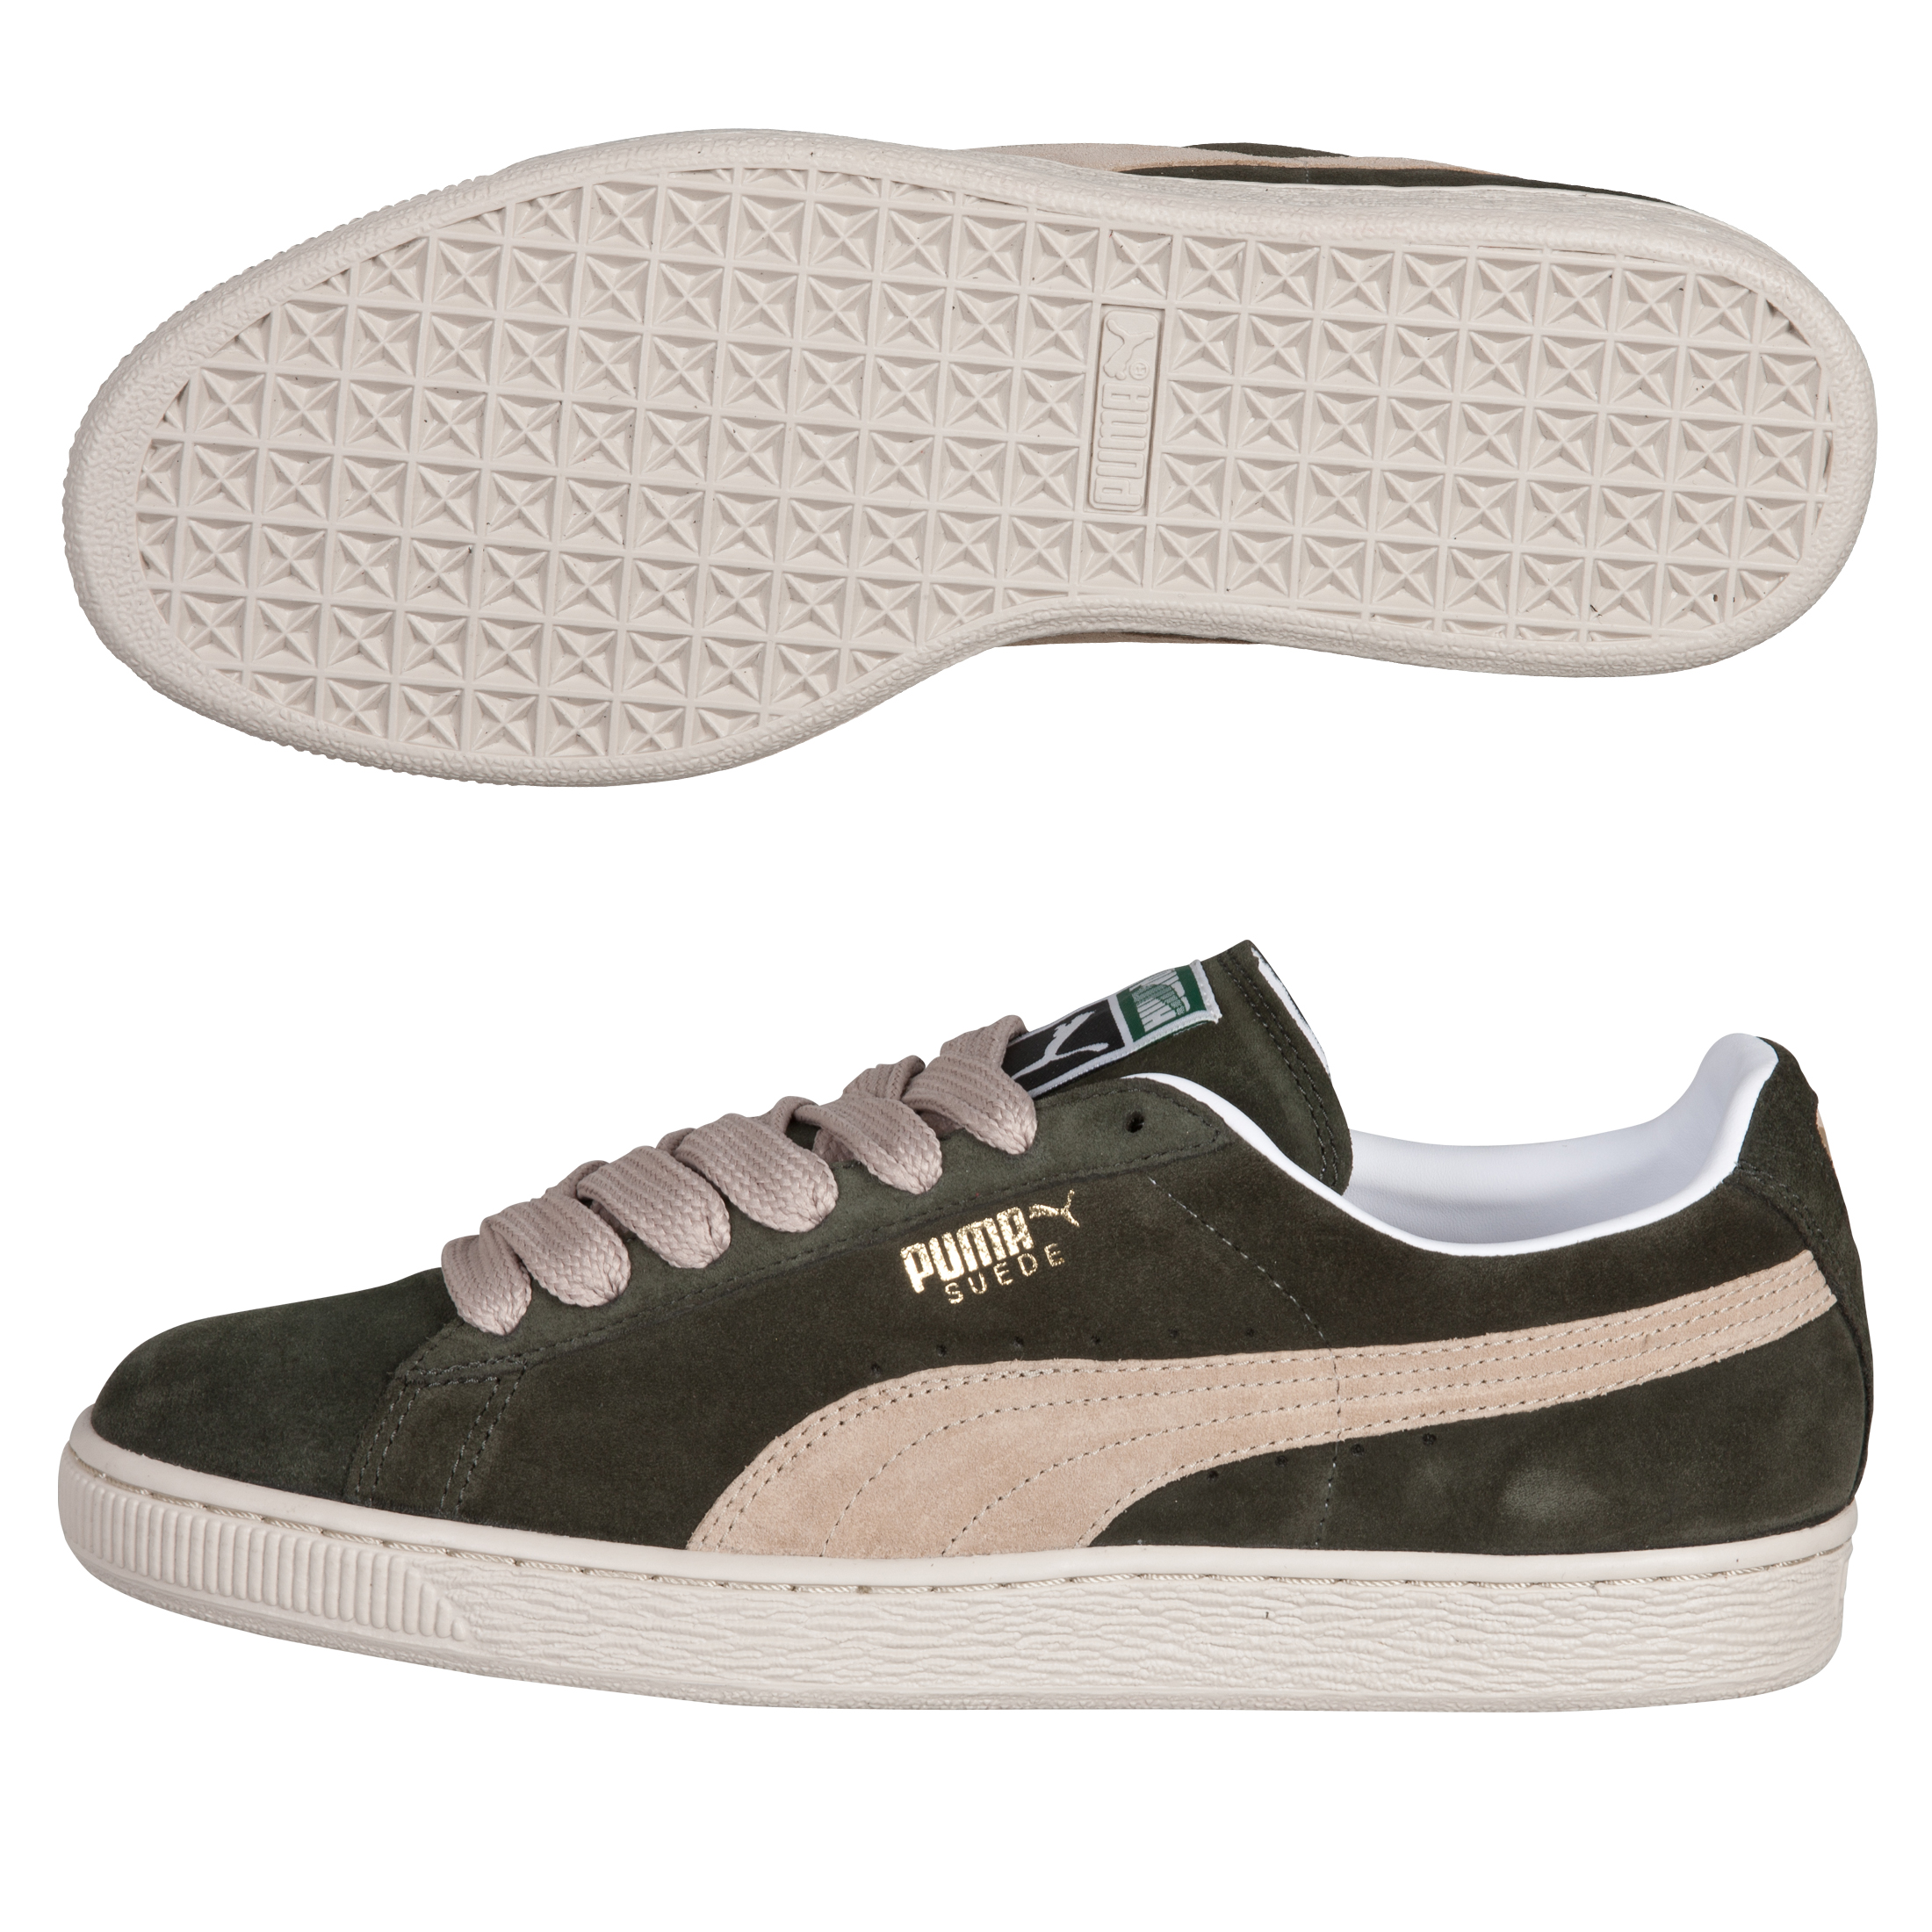 Puma Suede Classic Eco - Forest Night/Puma Khaki